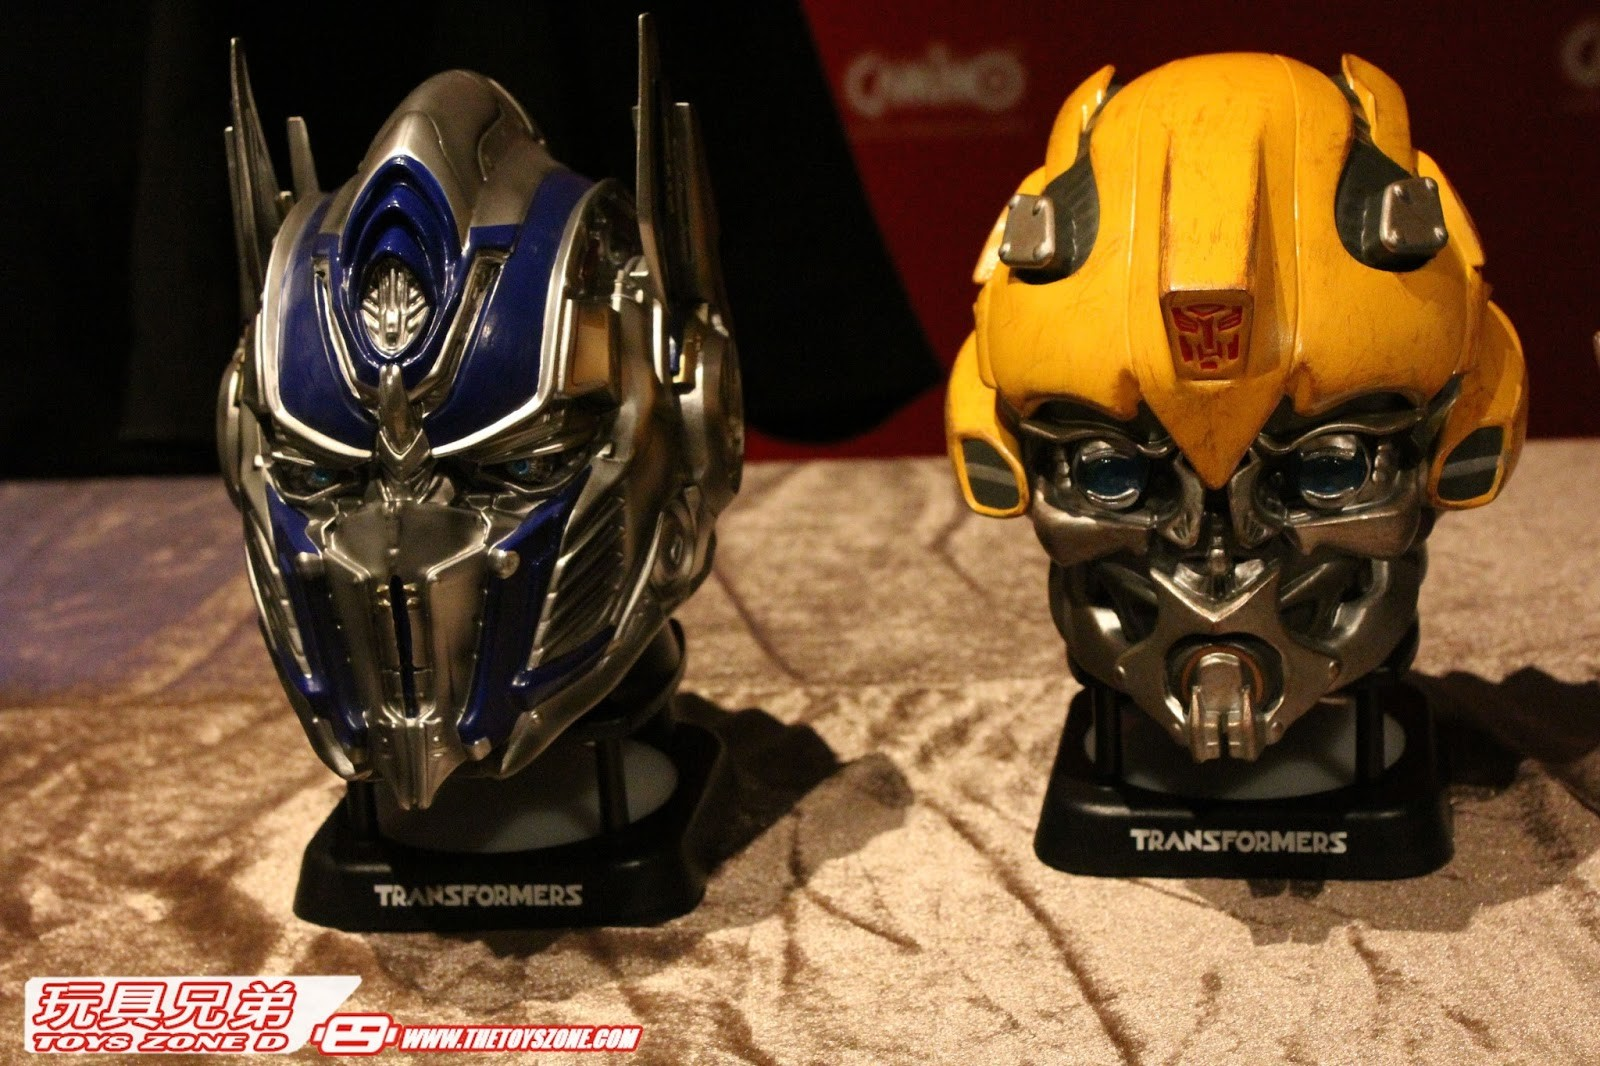 Transformers News: Camino International Transformers: The Last Knight Bluetooth Speakers